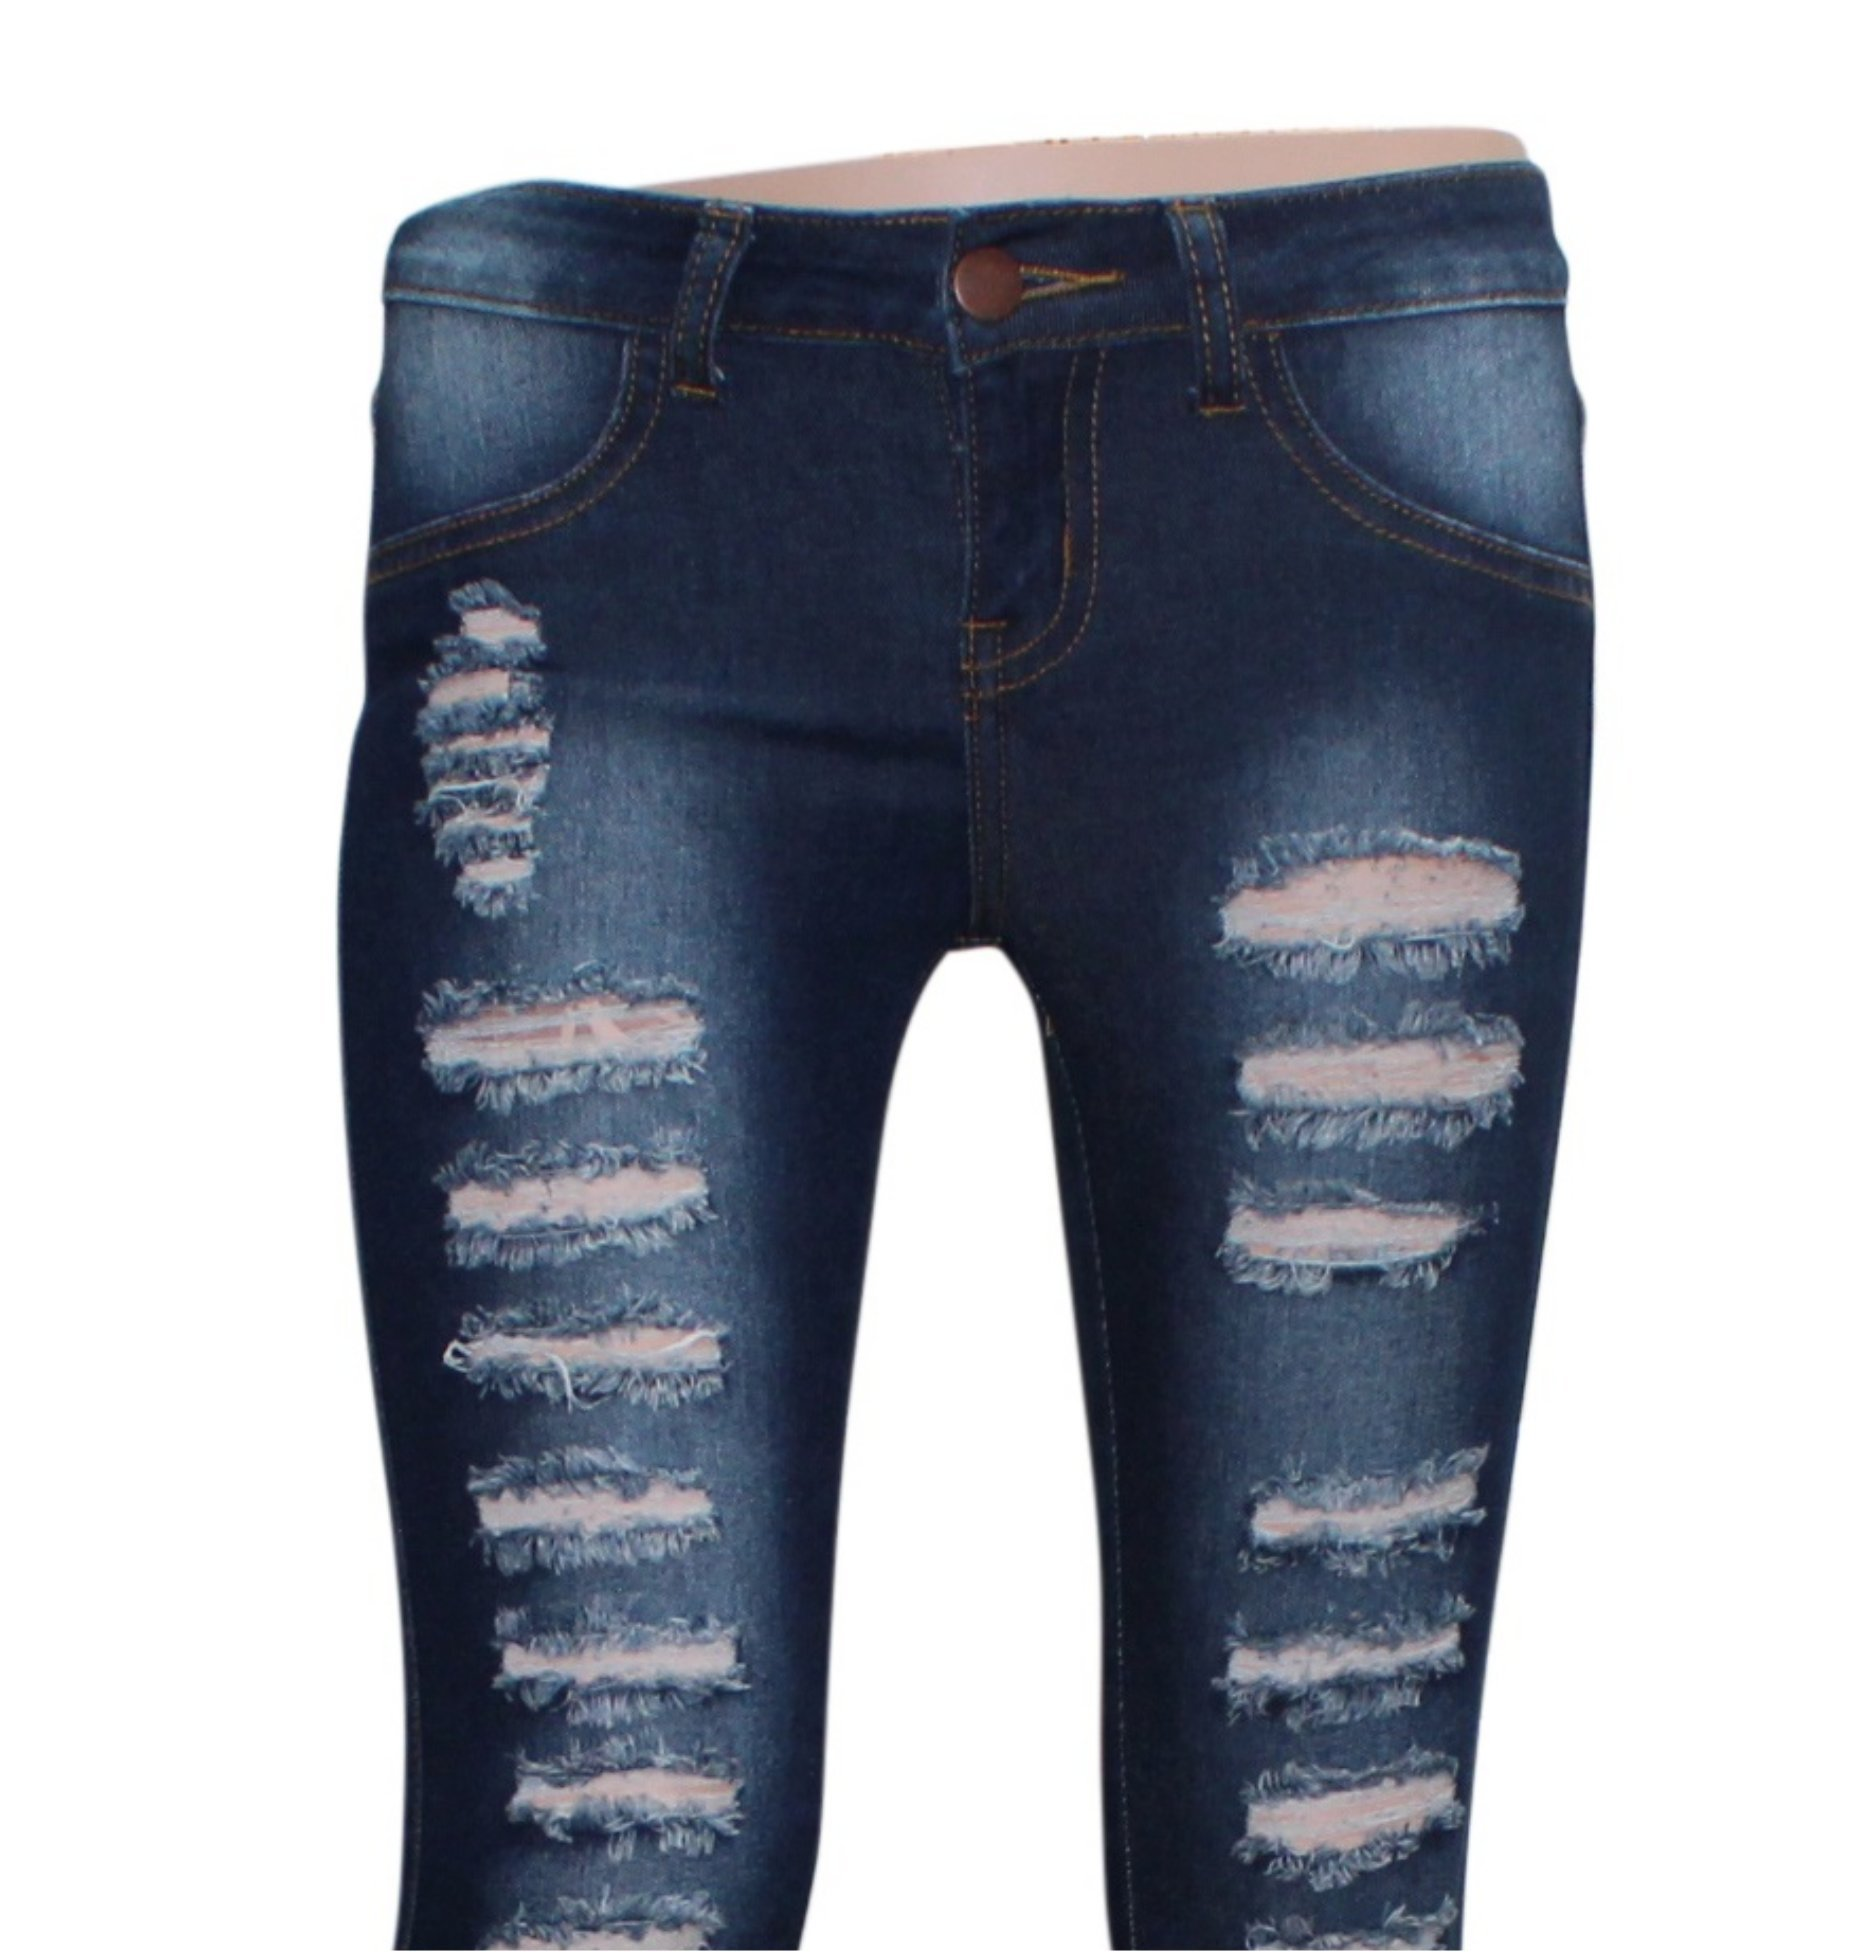 Teen G's Jeans and Twill for Girls by Skinny Jeans for Girls with Ripped Denim and Distressed Stretch Fabric Slim Fit Pants,kp33 (16, Black) by Teen G's (Image #4)